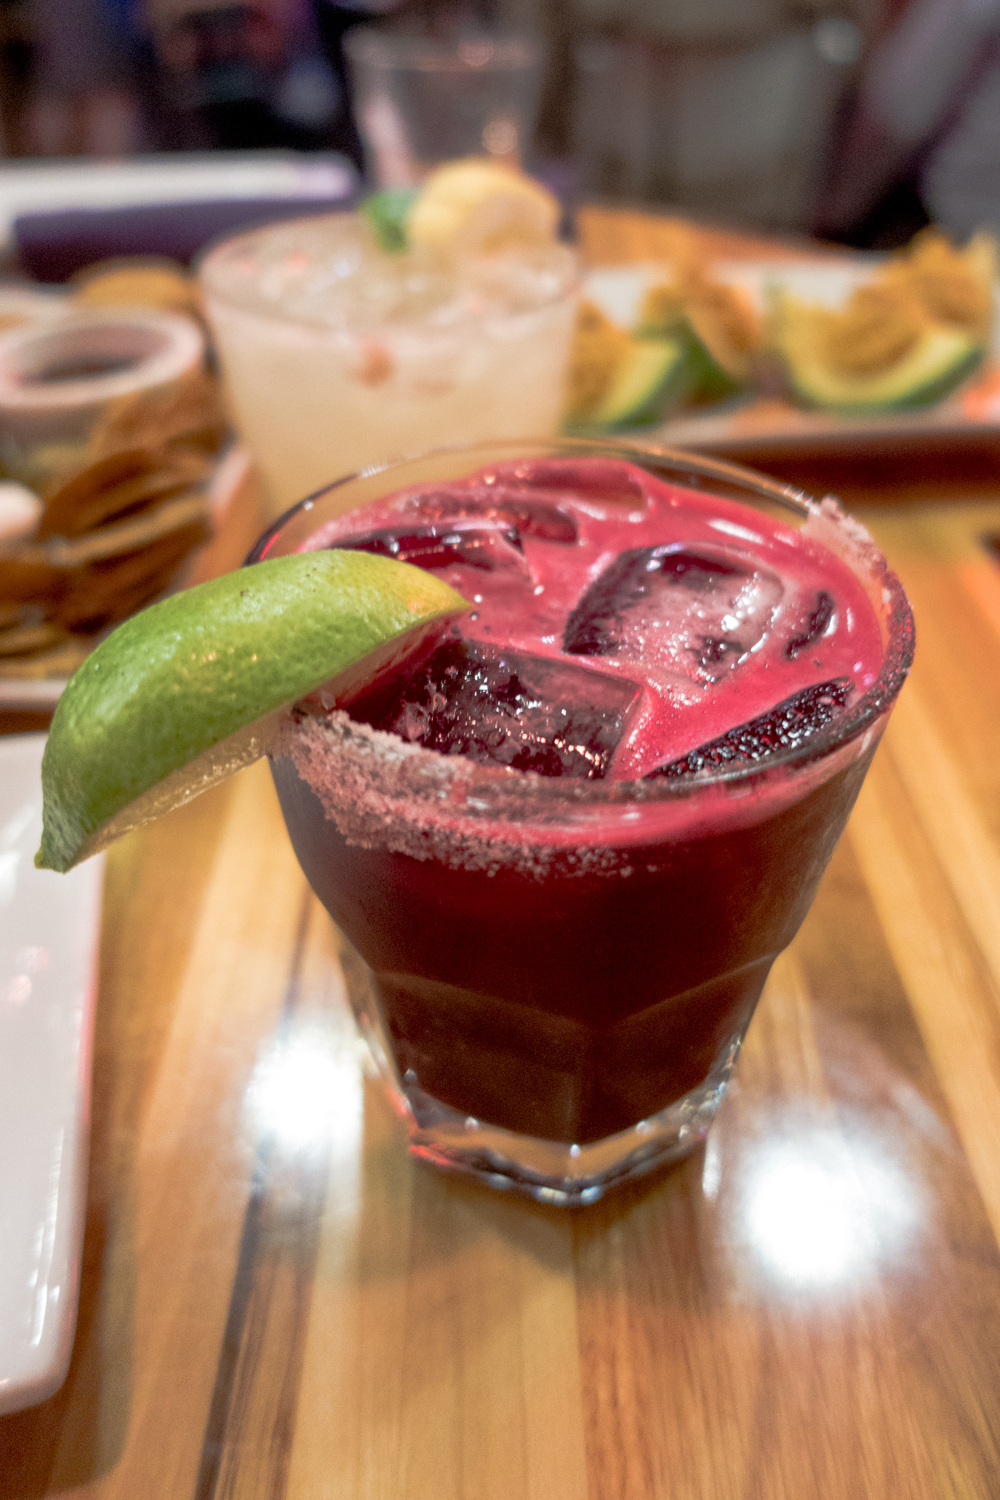 Beet Margarita from Zest Kitchen & Bar in Salt Lake City